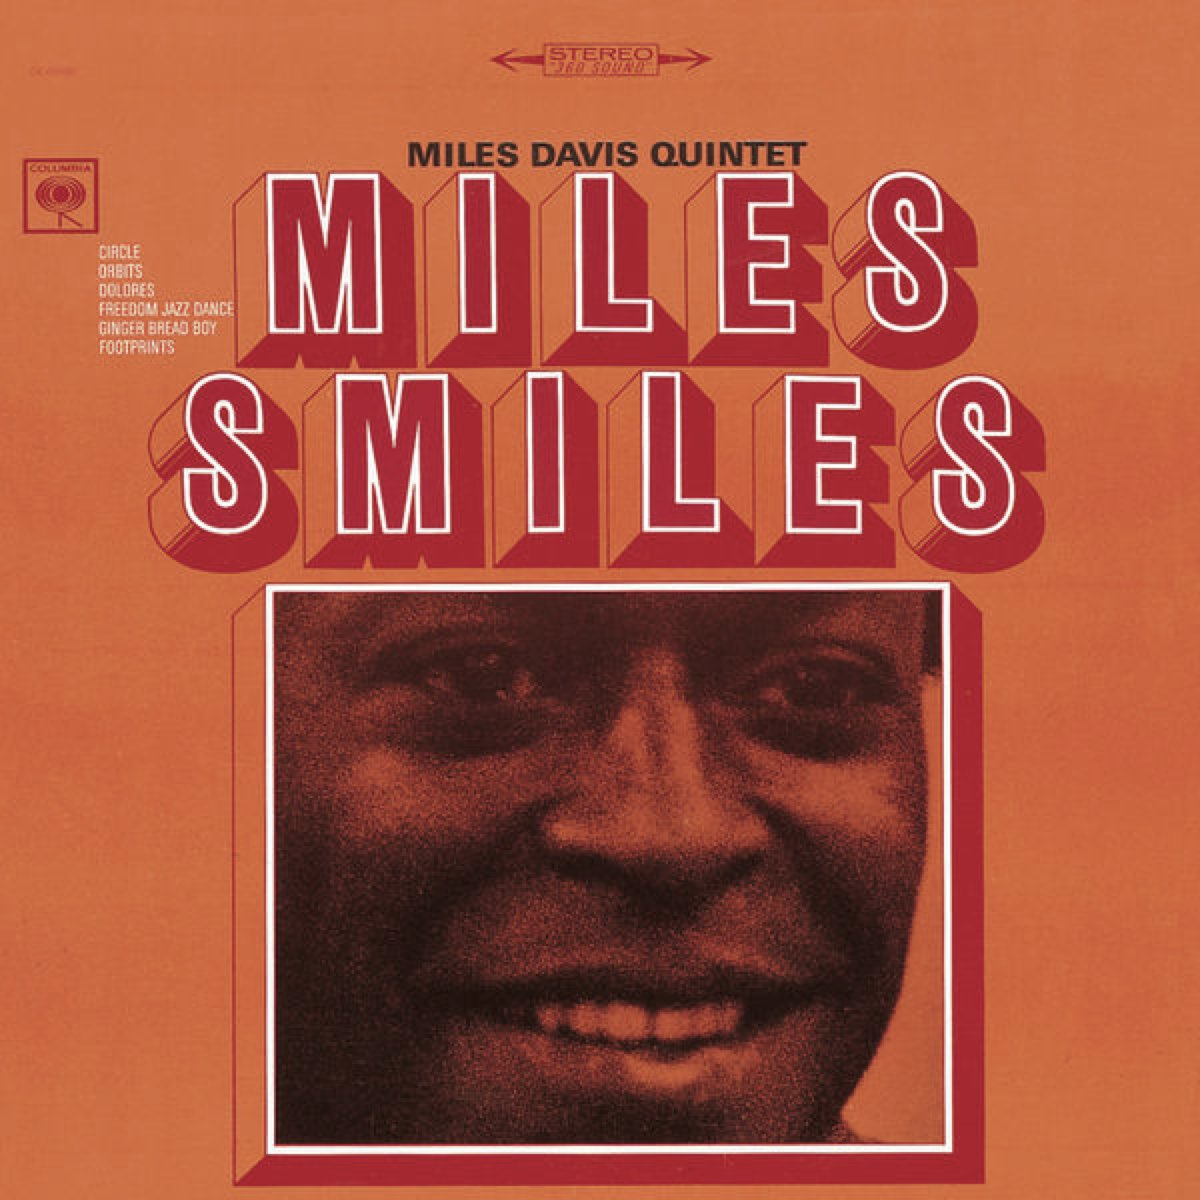 #Music: Gingerbread Boy - Miles Davis #TwitSongMac